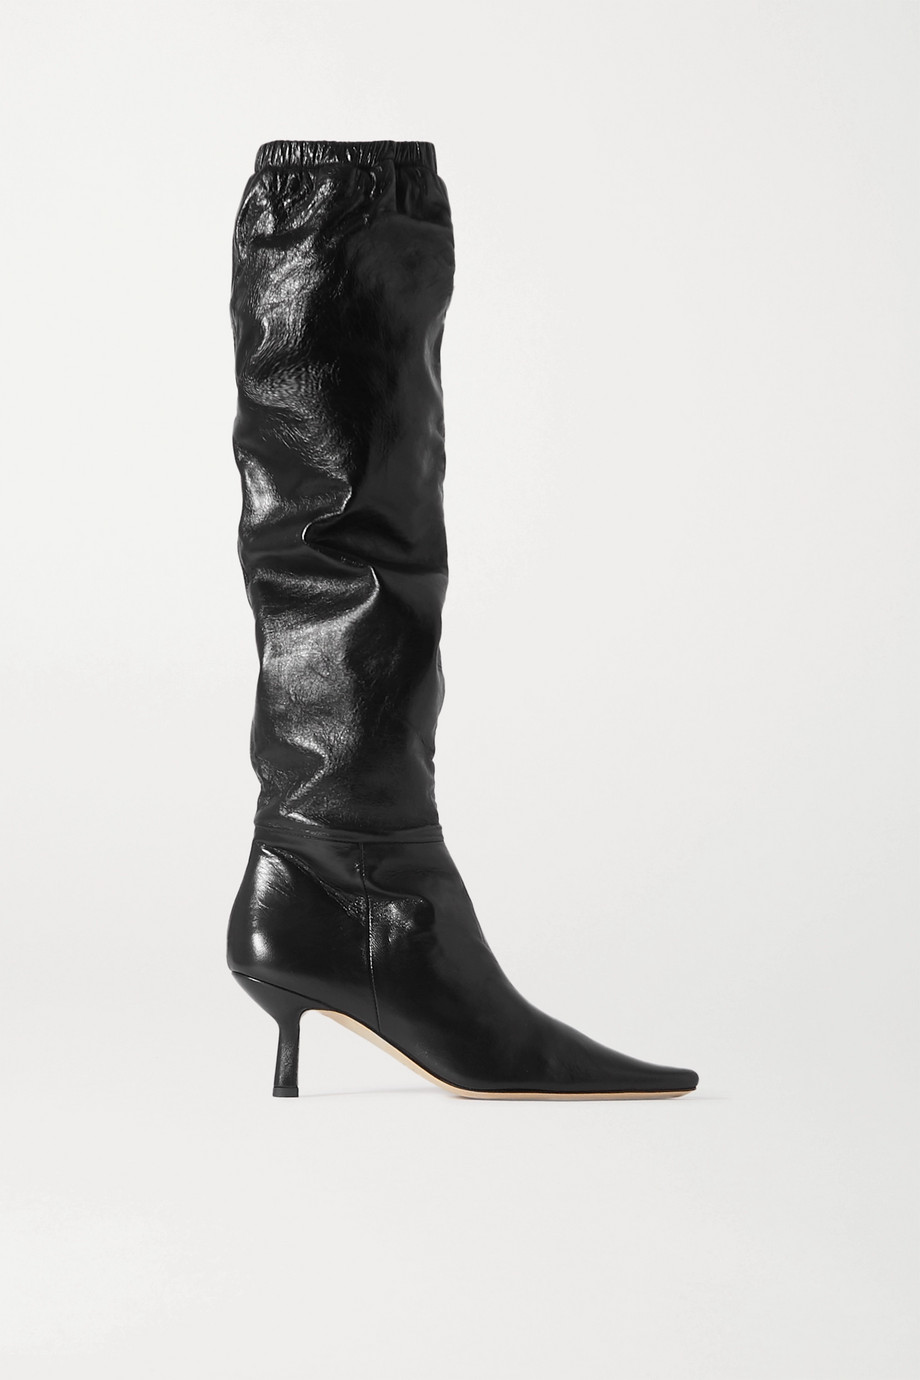 BY FAR Gwen leather knee boots